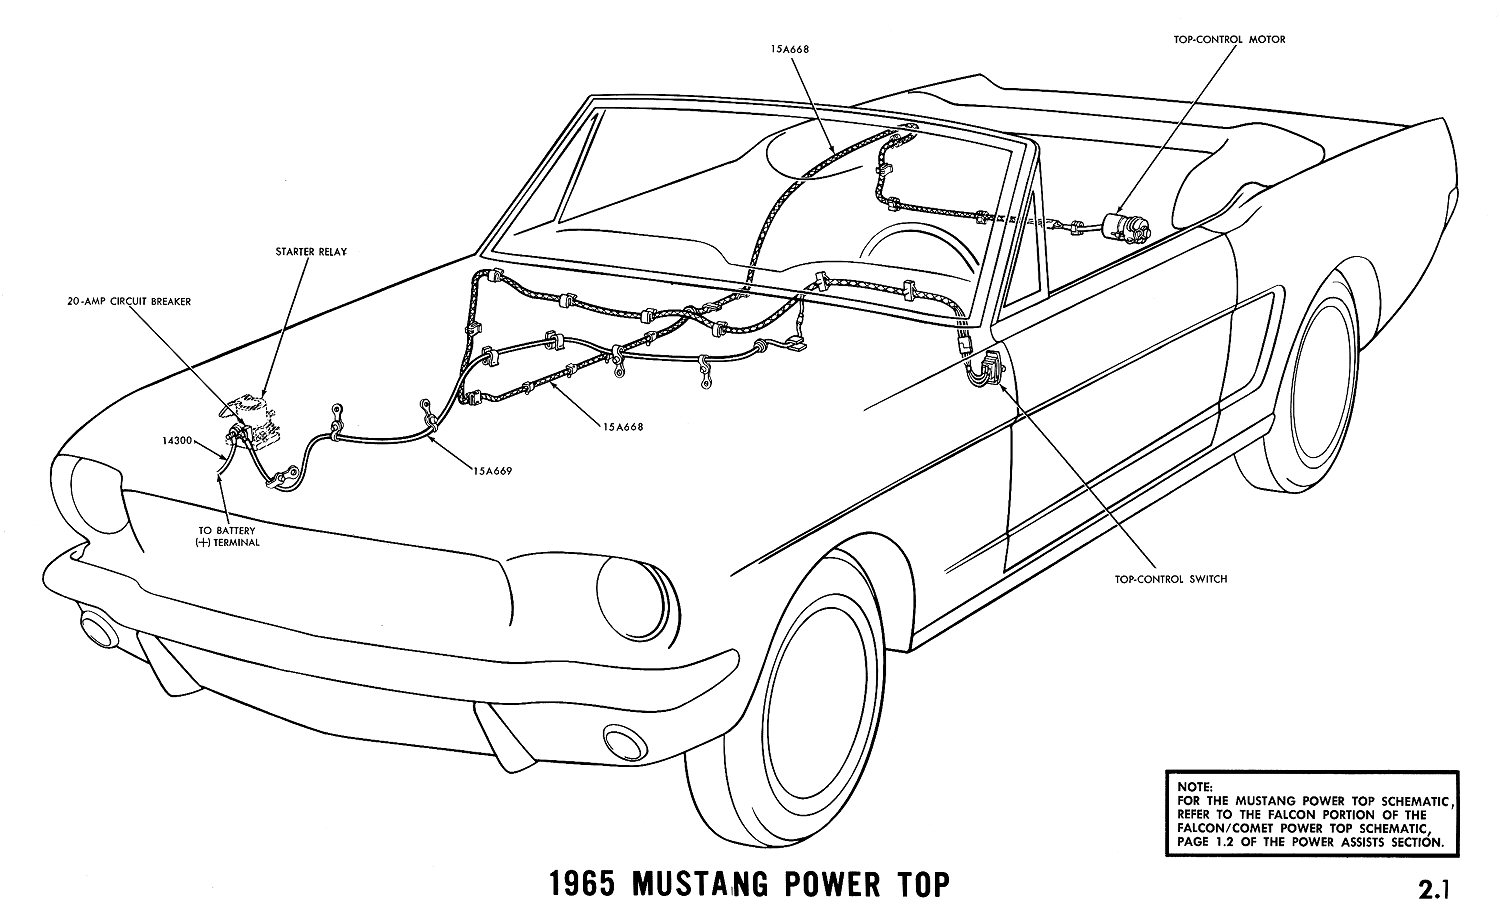 hight resolution of 1965 mustang wiring diagrams average joe restoration1965 mustang power top pictorial or schematic